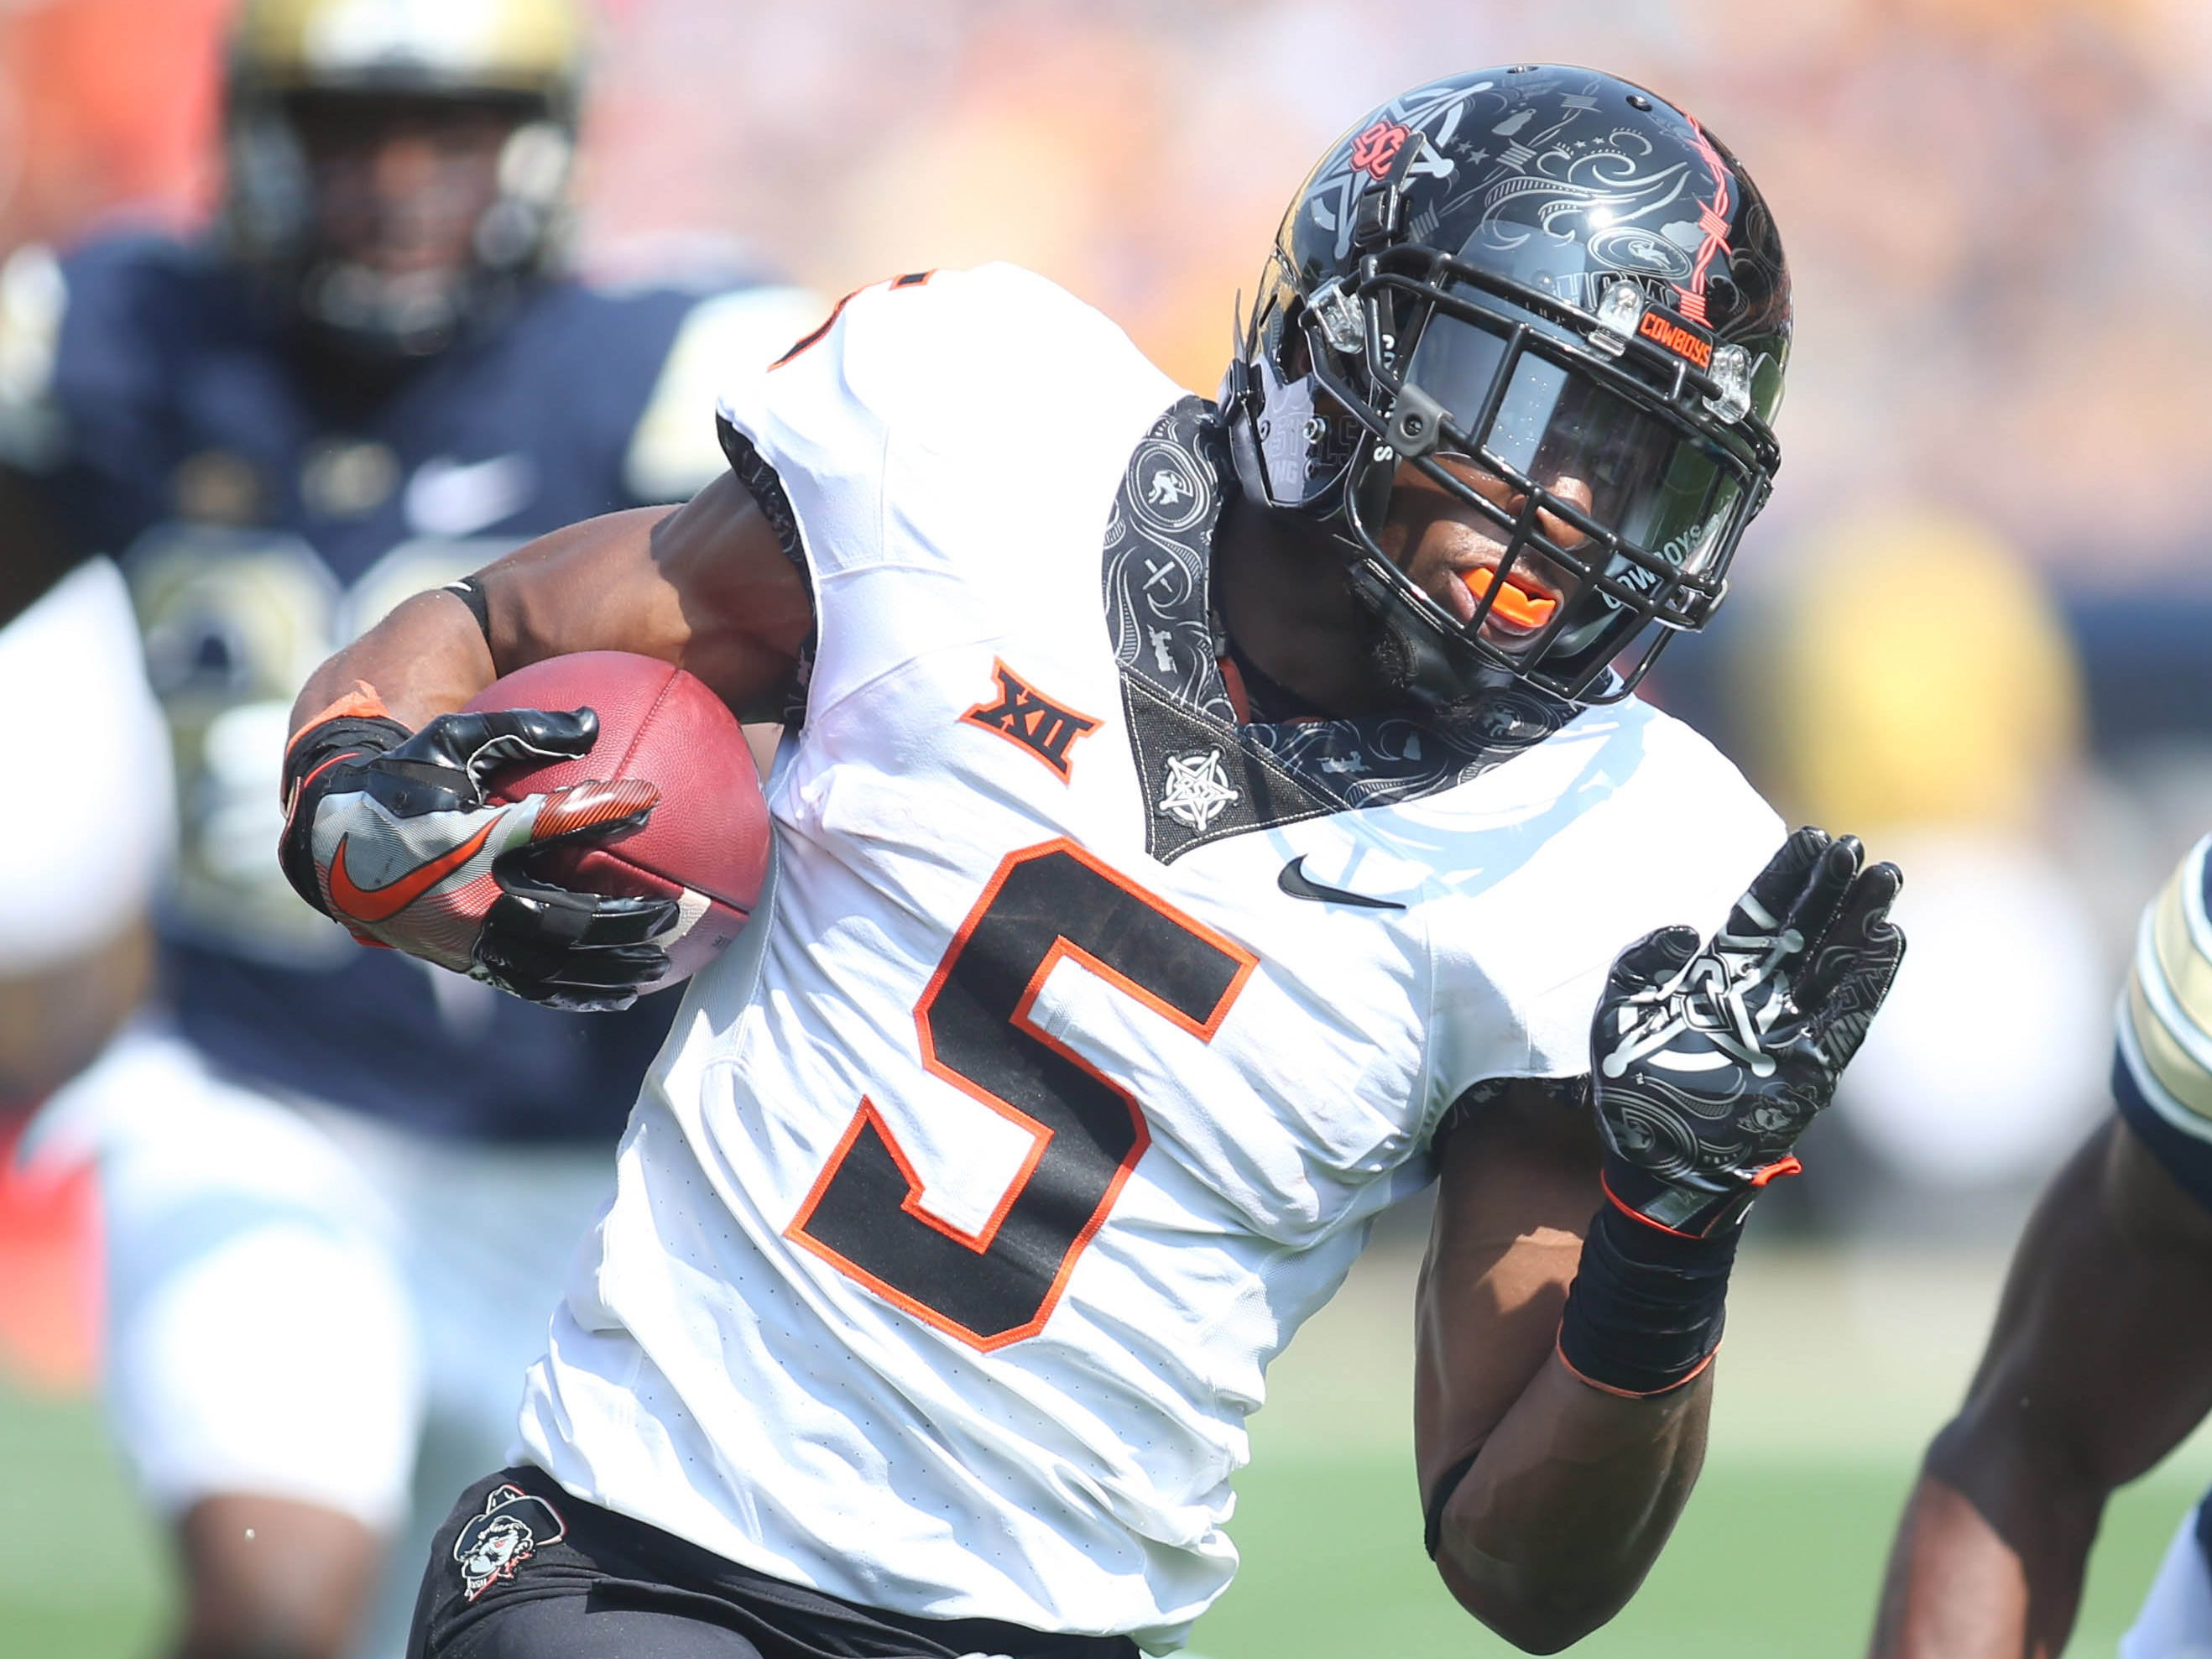 No. 25 Oklahoma State Cowboys (10-3 in 2018).